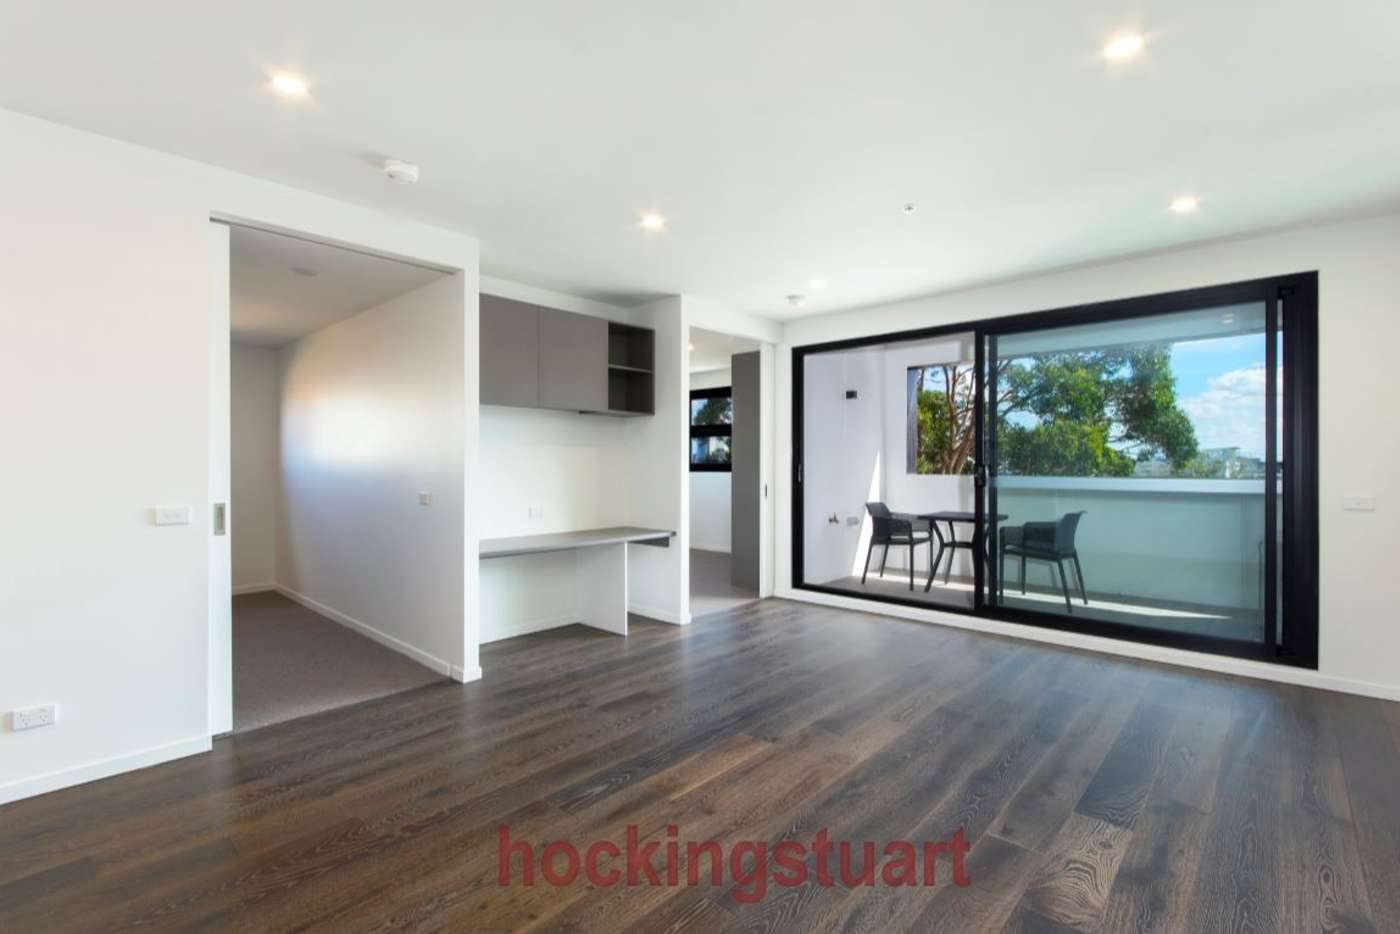 Seventh view of Homely apartment listing, 208/146 Bellerine Street, Geelong VIC 3220